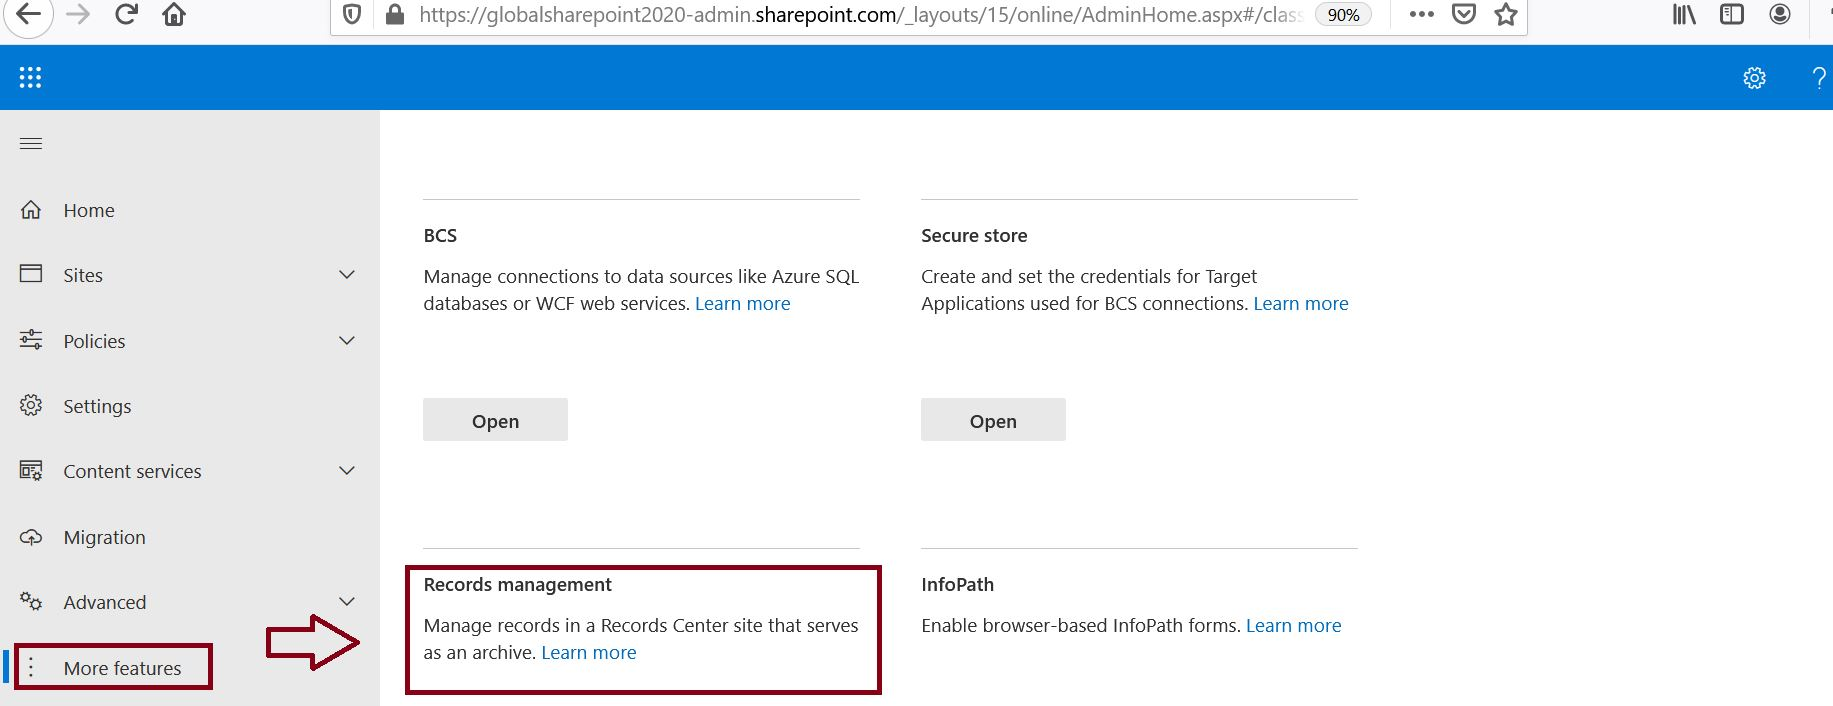 Record management feature in SharePoint Online from Microsoft 365 admin center